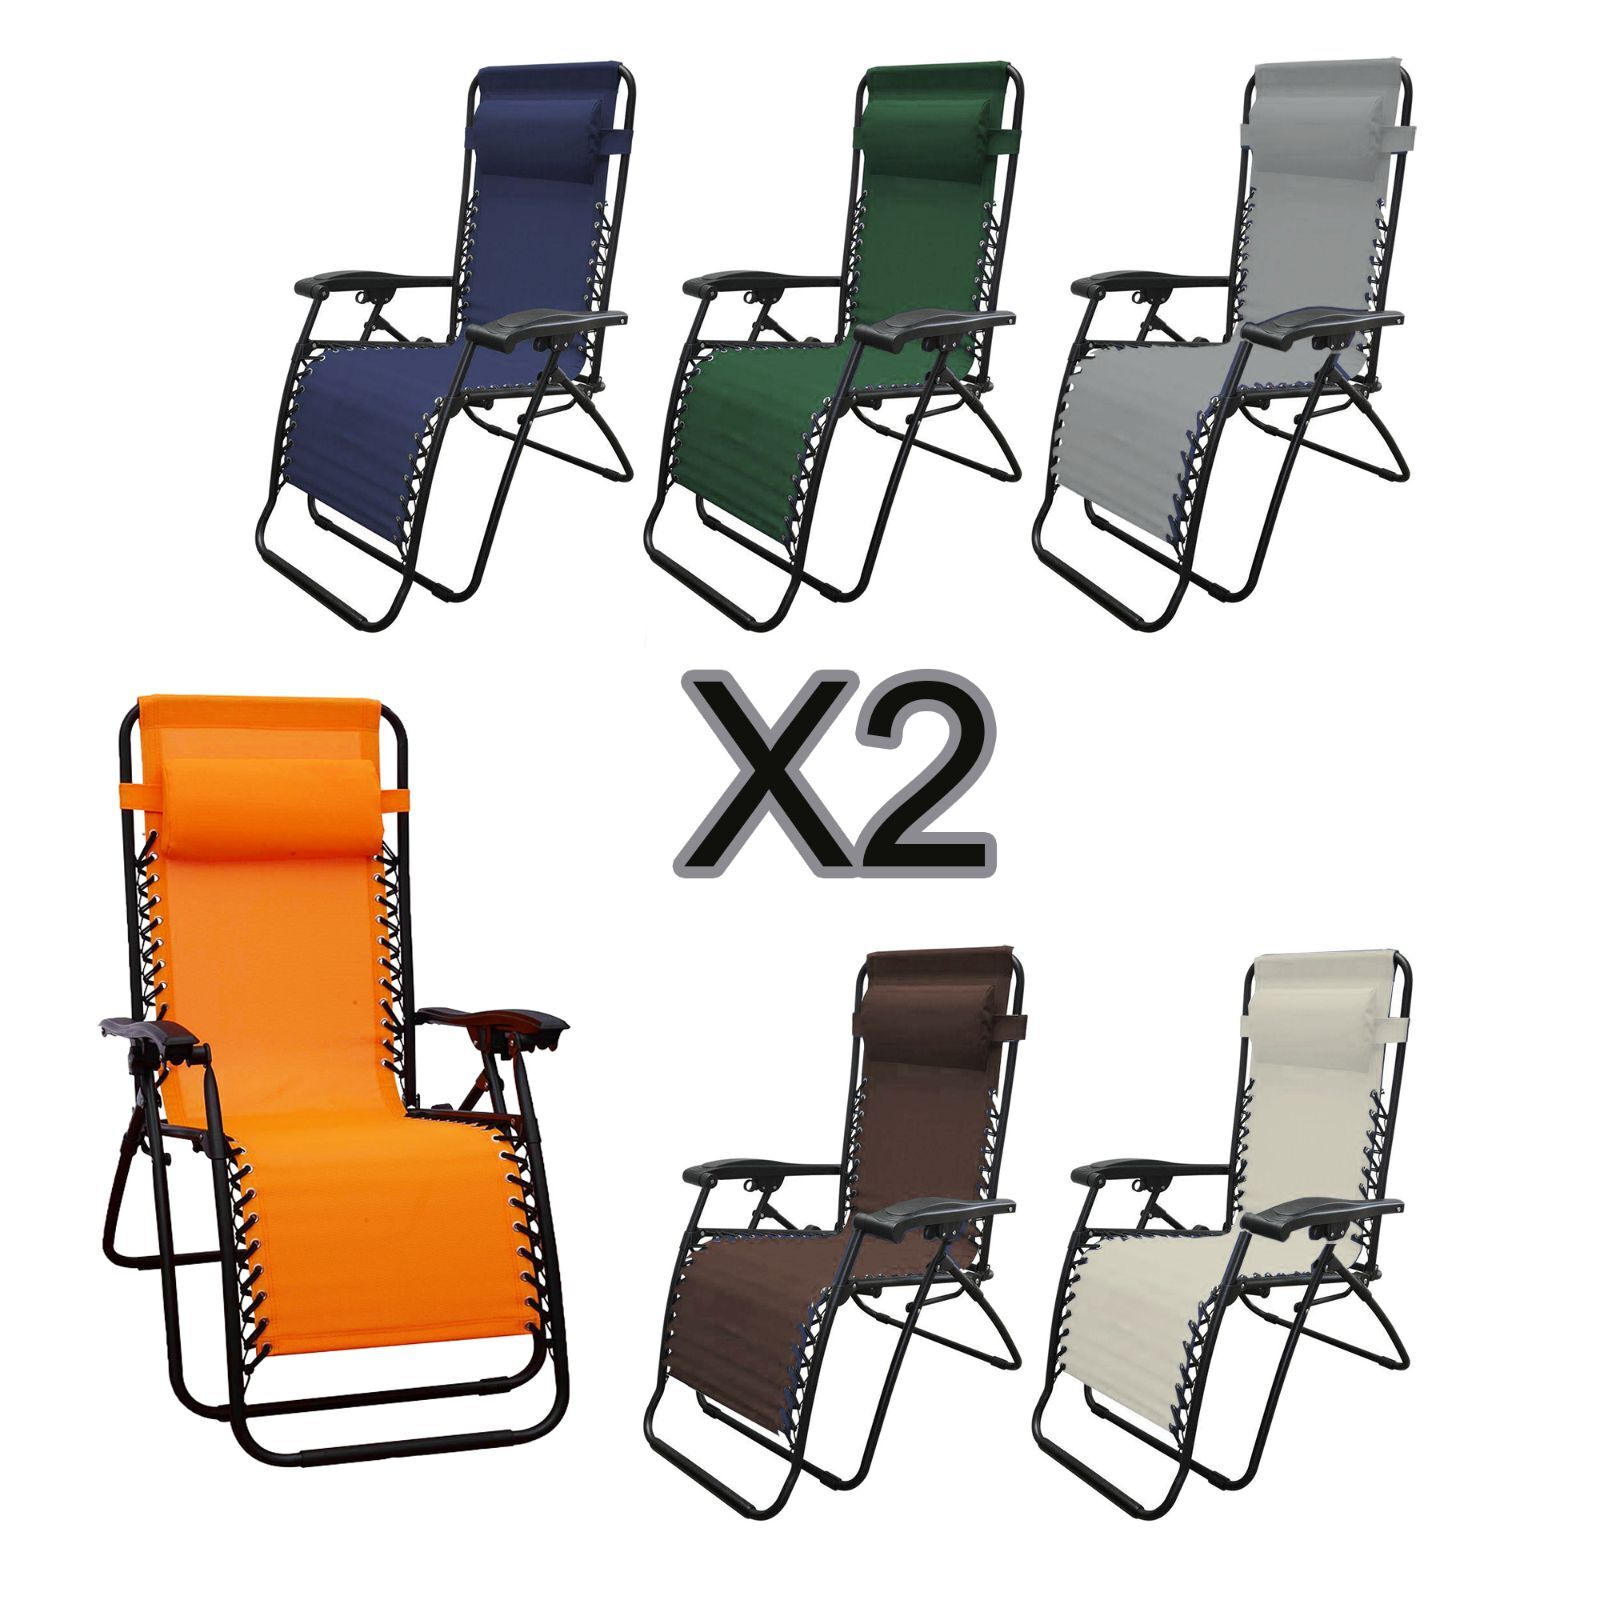 2pc lounge patio chairs outdoor yard zero gravity folding portable chaise chair ebay. Black Bedroom Furniture Sets. Home Design Ideas